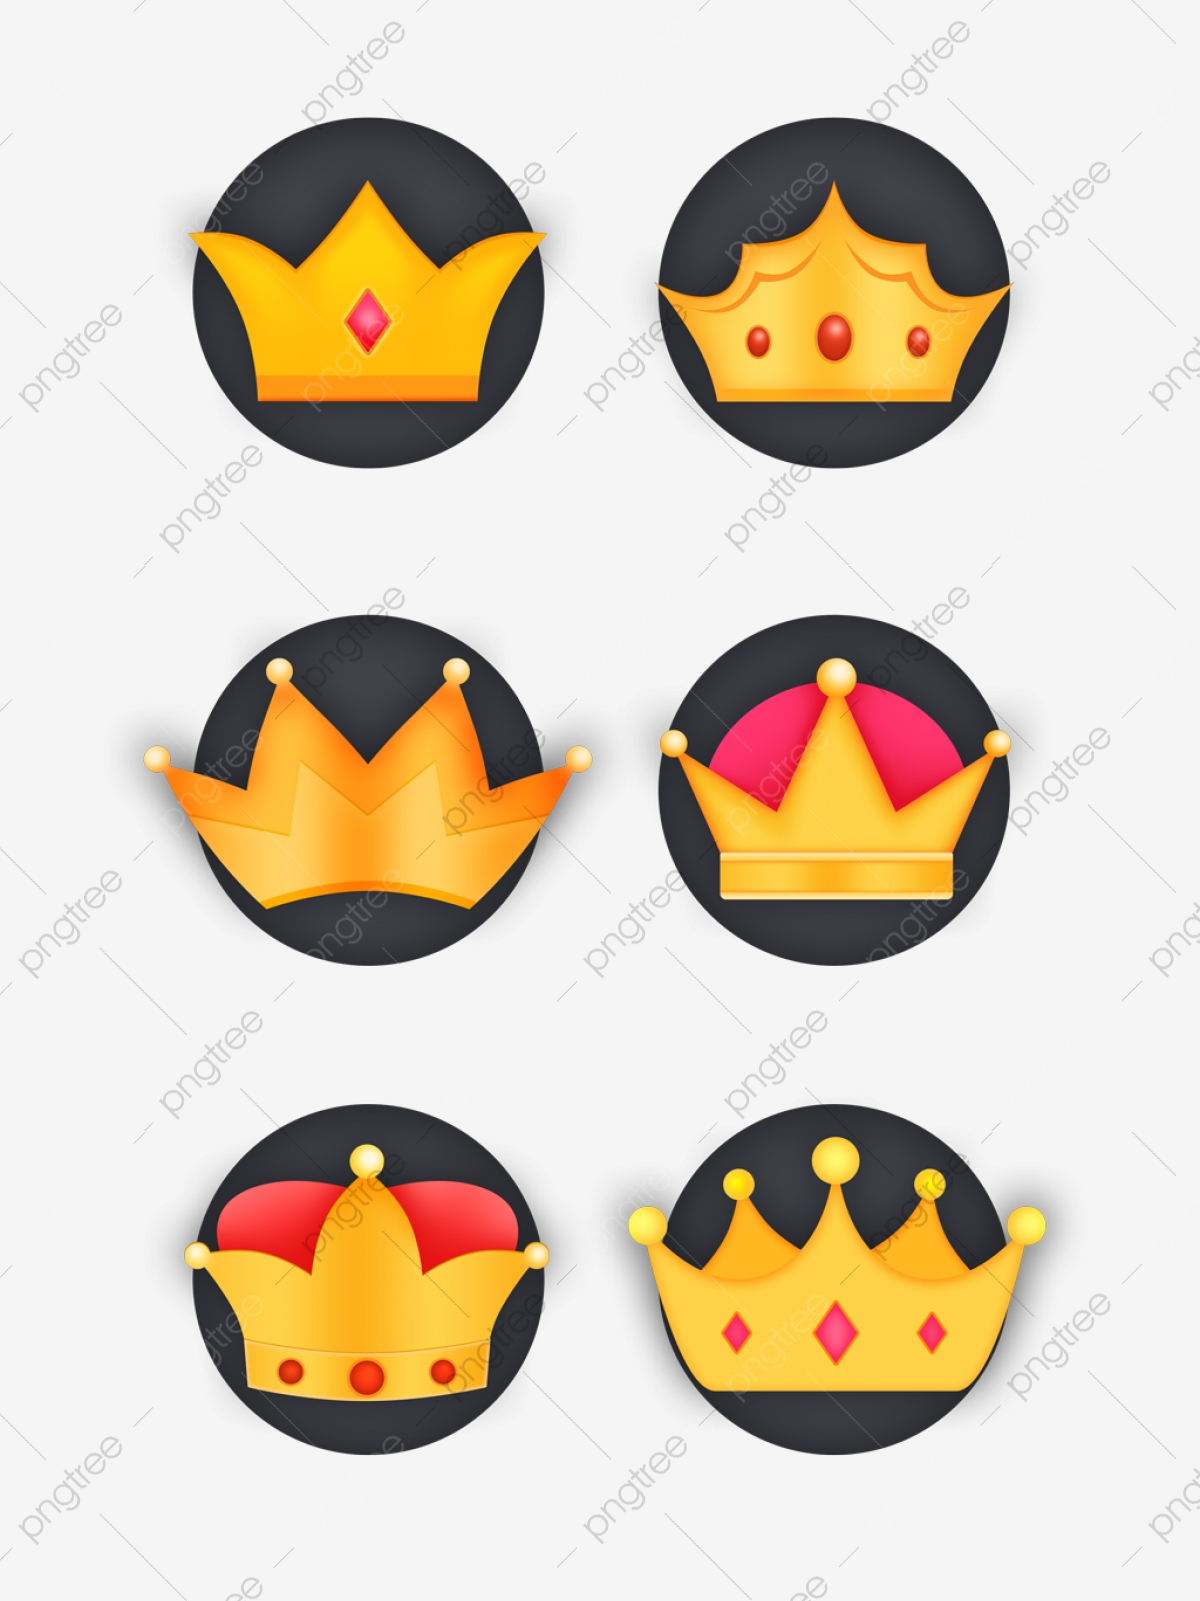 Golden Crown Crown Cartoon Hand Drawn Material Crown Clipart Gems Ranking Png Transparent Clipart Image And Psd File For Free Download A wide variety of golden crown options are available to you https pngtree com freepng golden crown crown cartoon hand drawn material 4388837 html